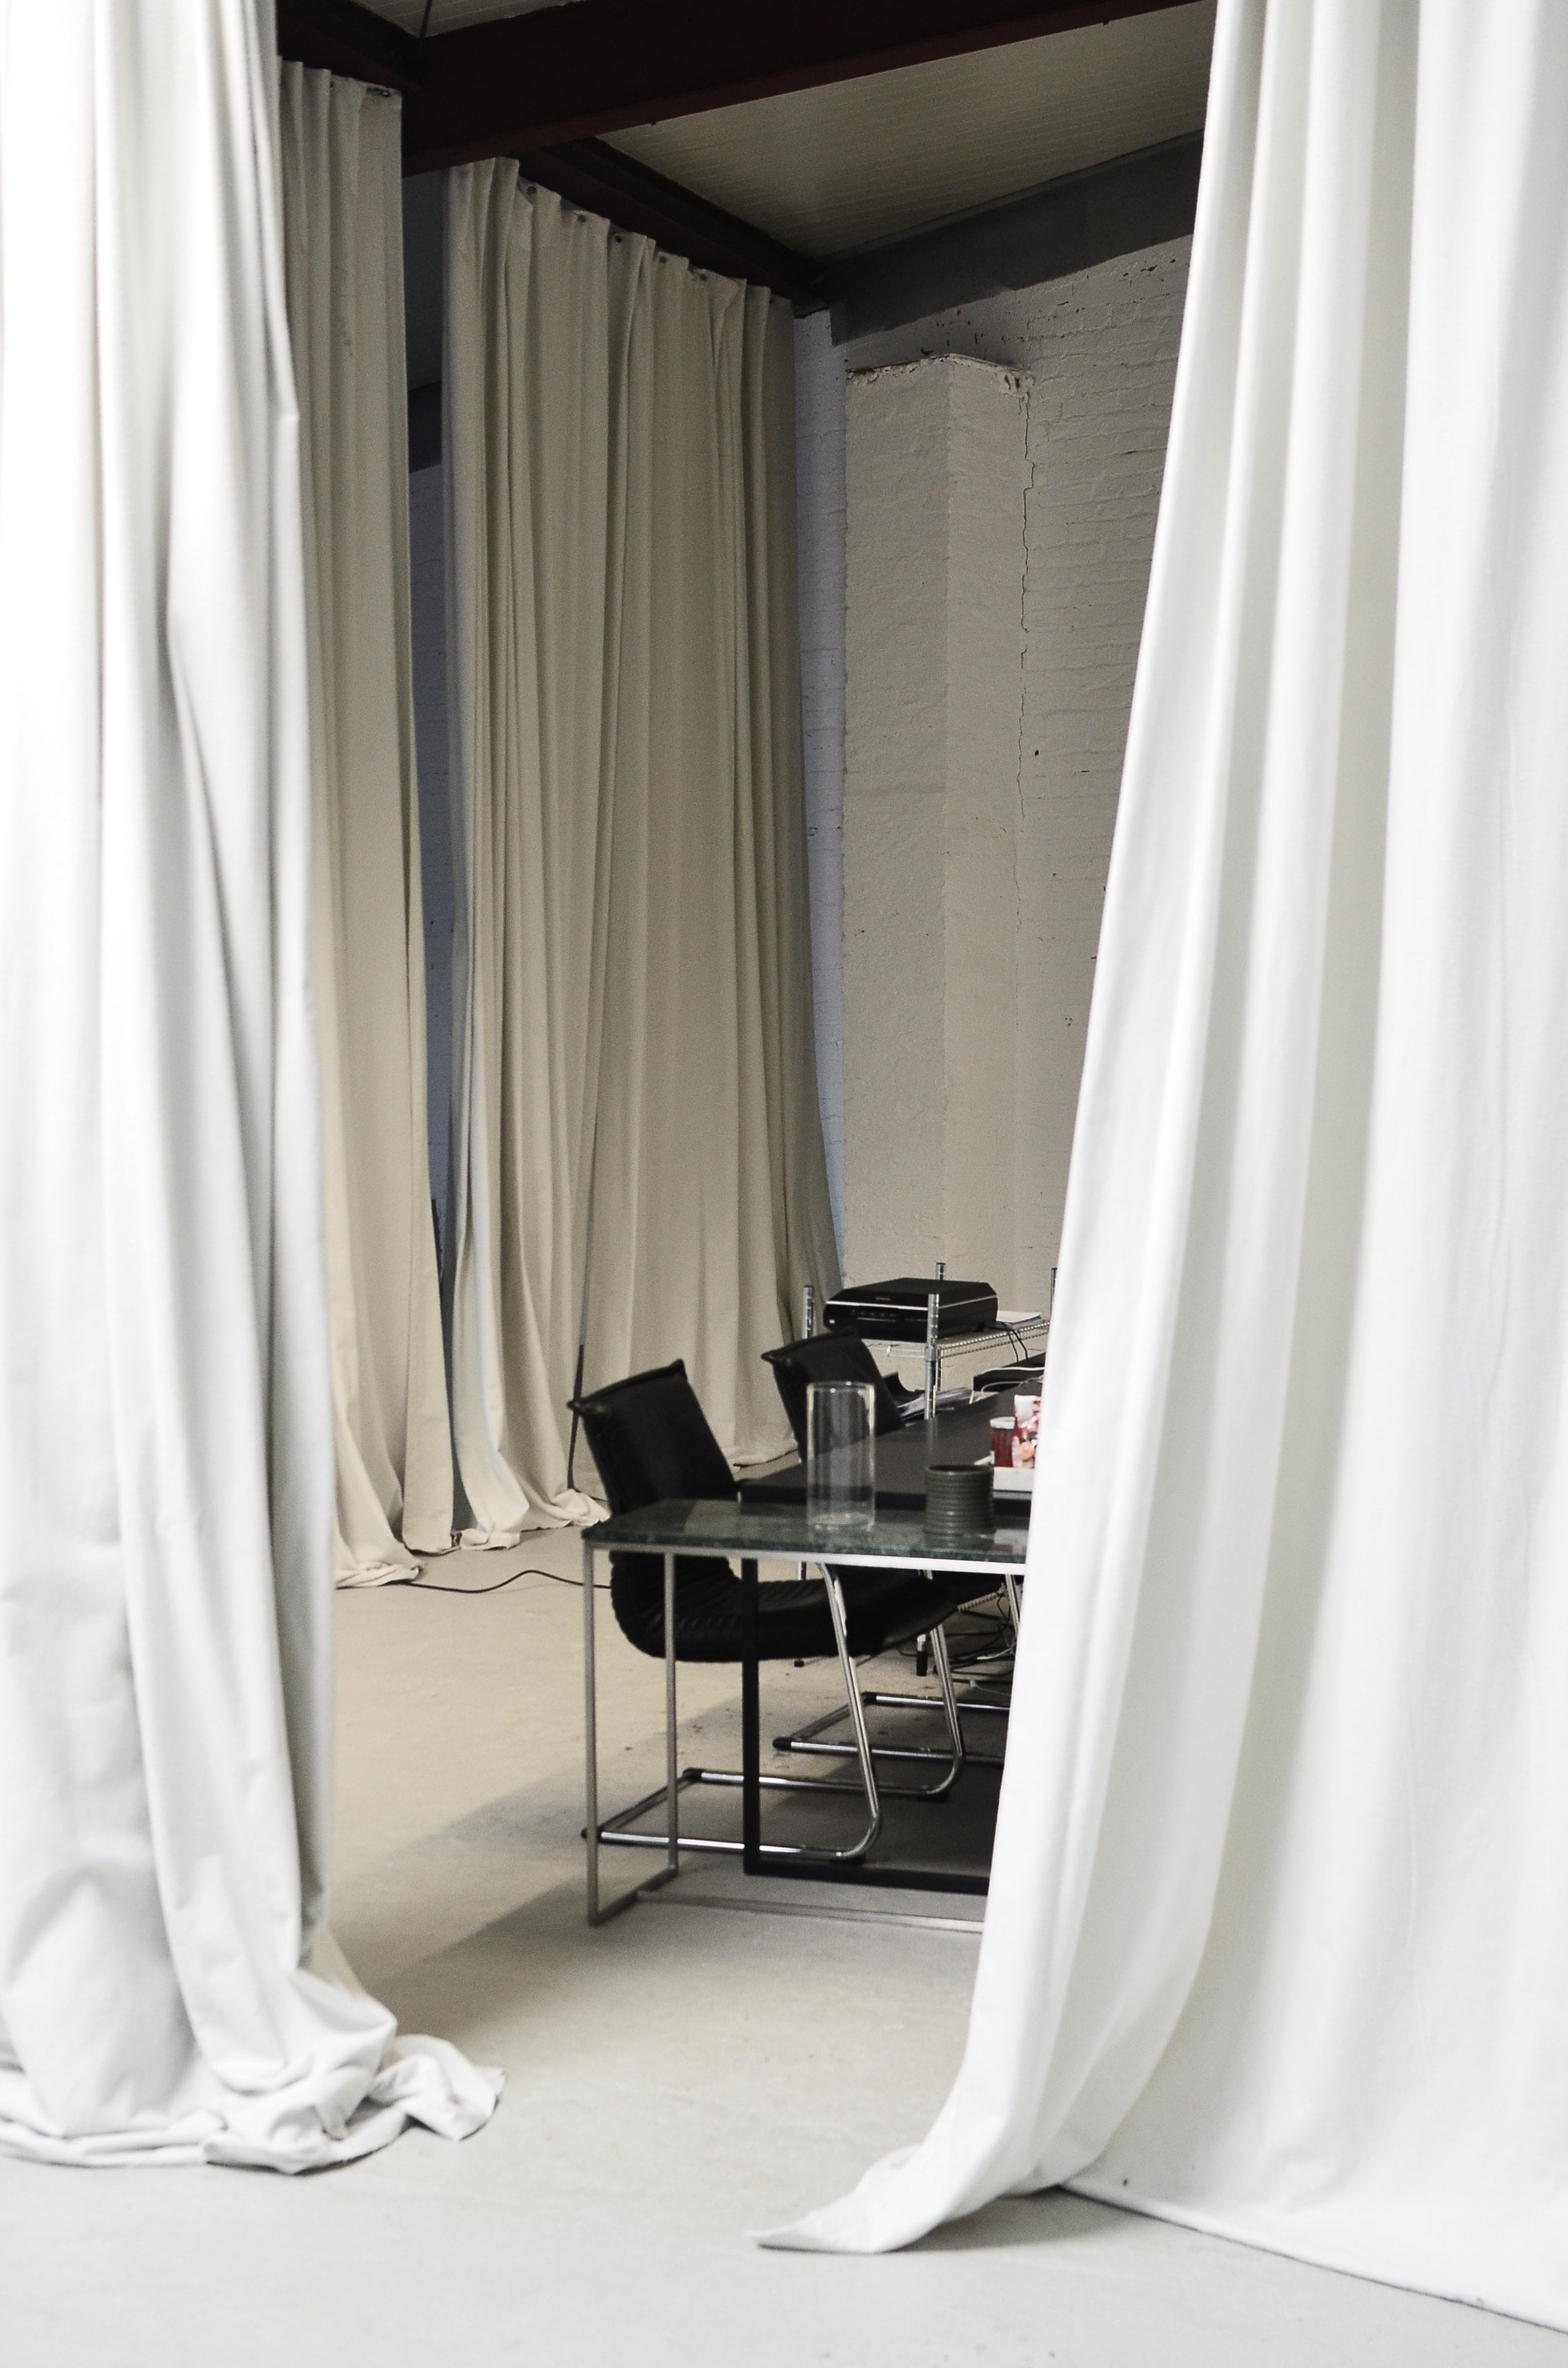 HQ office room surrounded by curtains